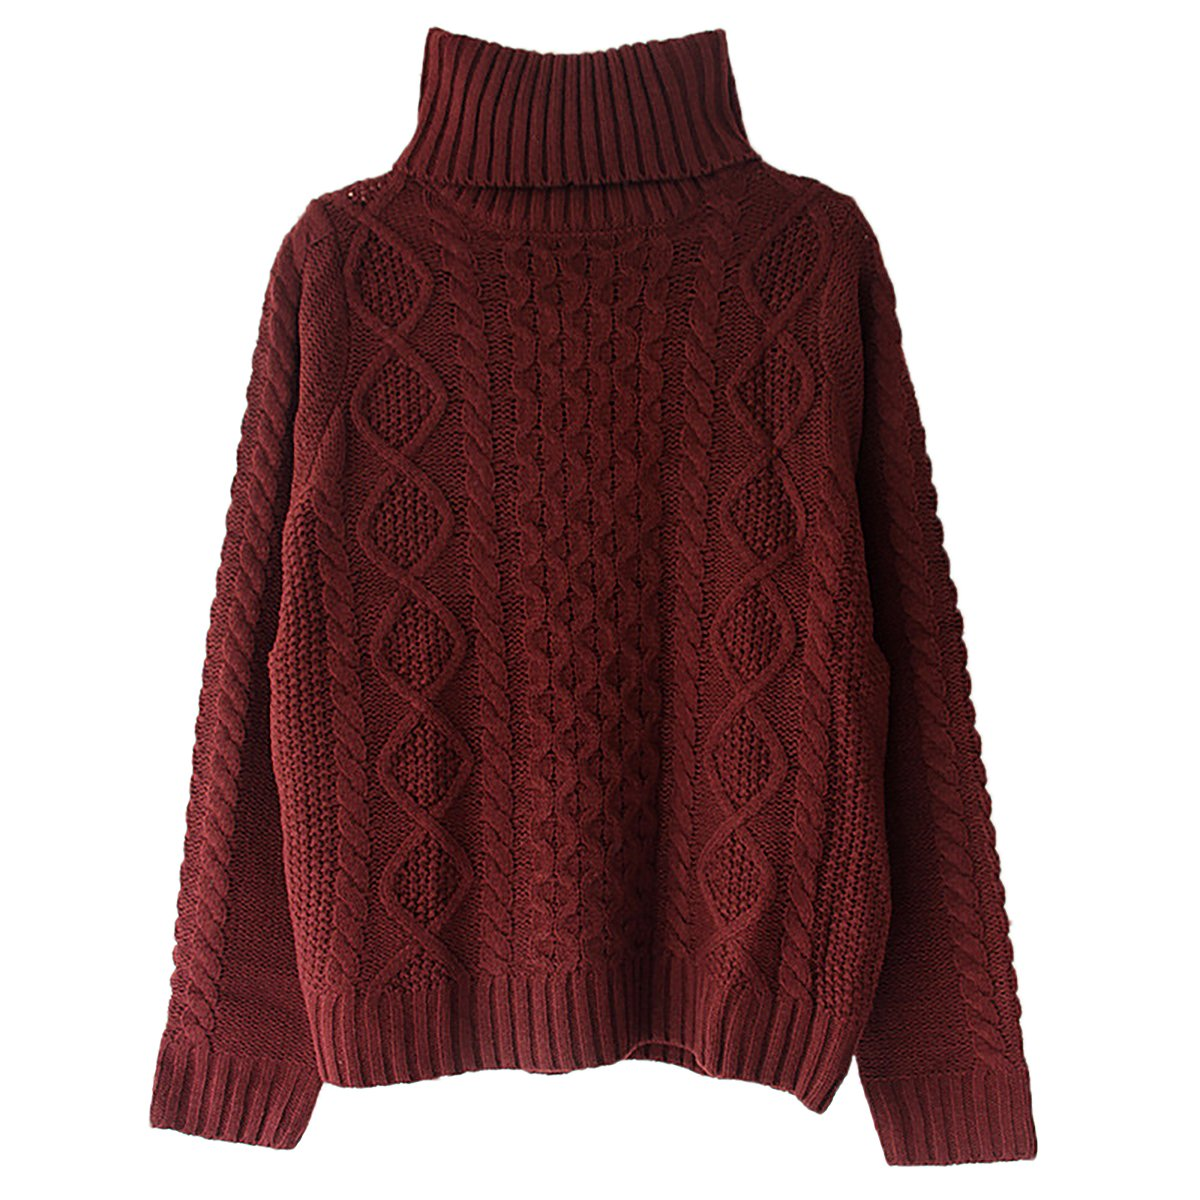 Women's Solid Turtleneck Long Sleeve Sweater Stretchy Cable Knit Outwear QiuLan